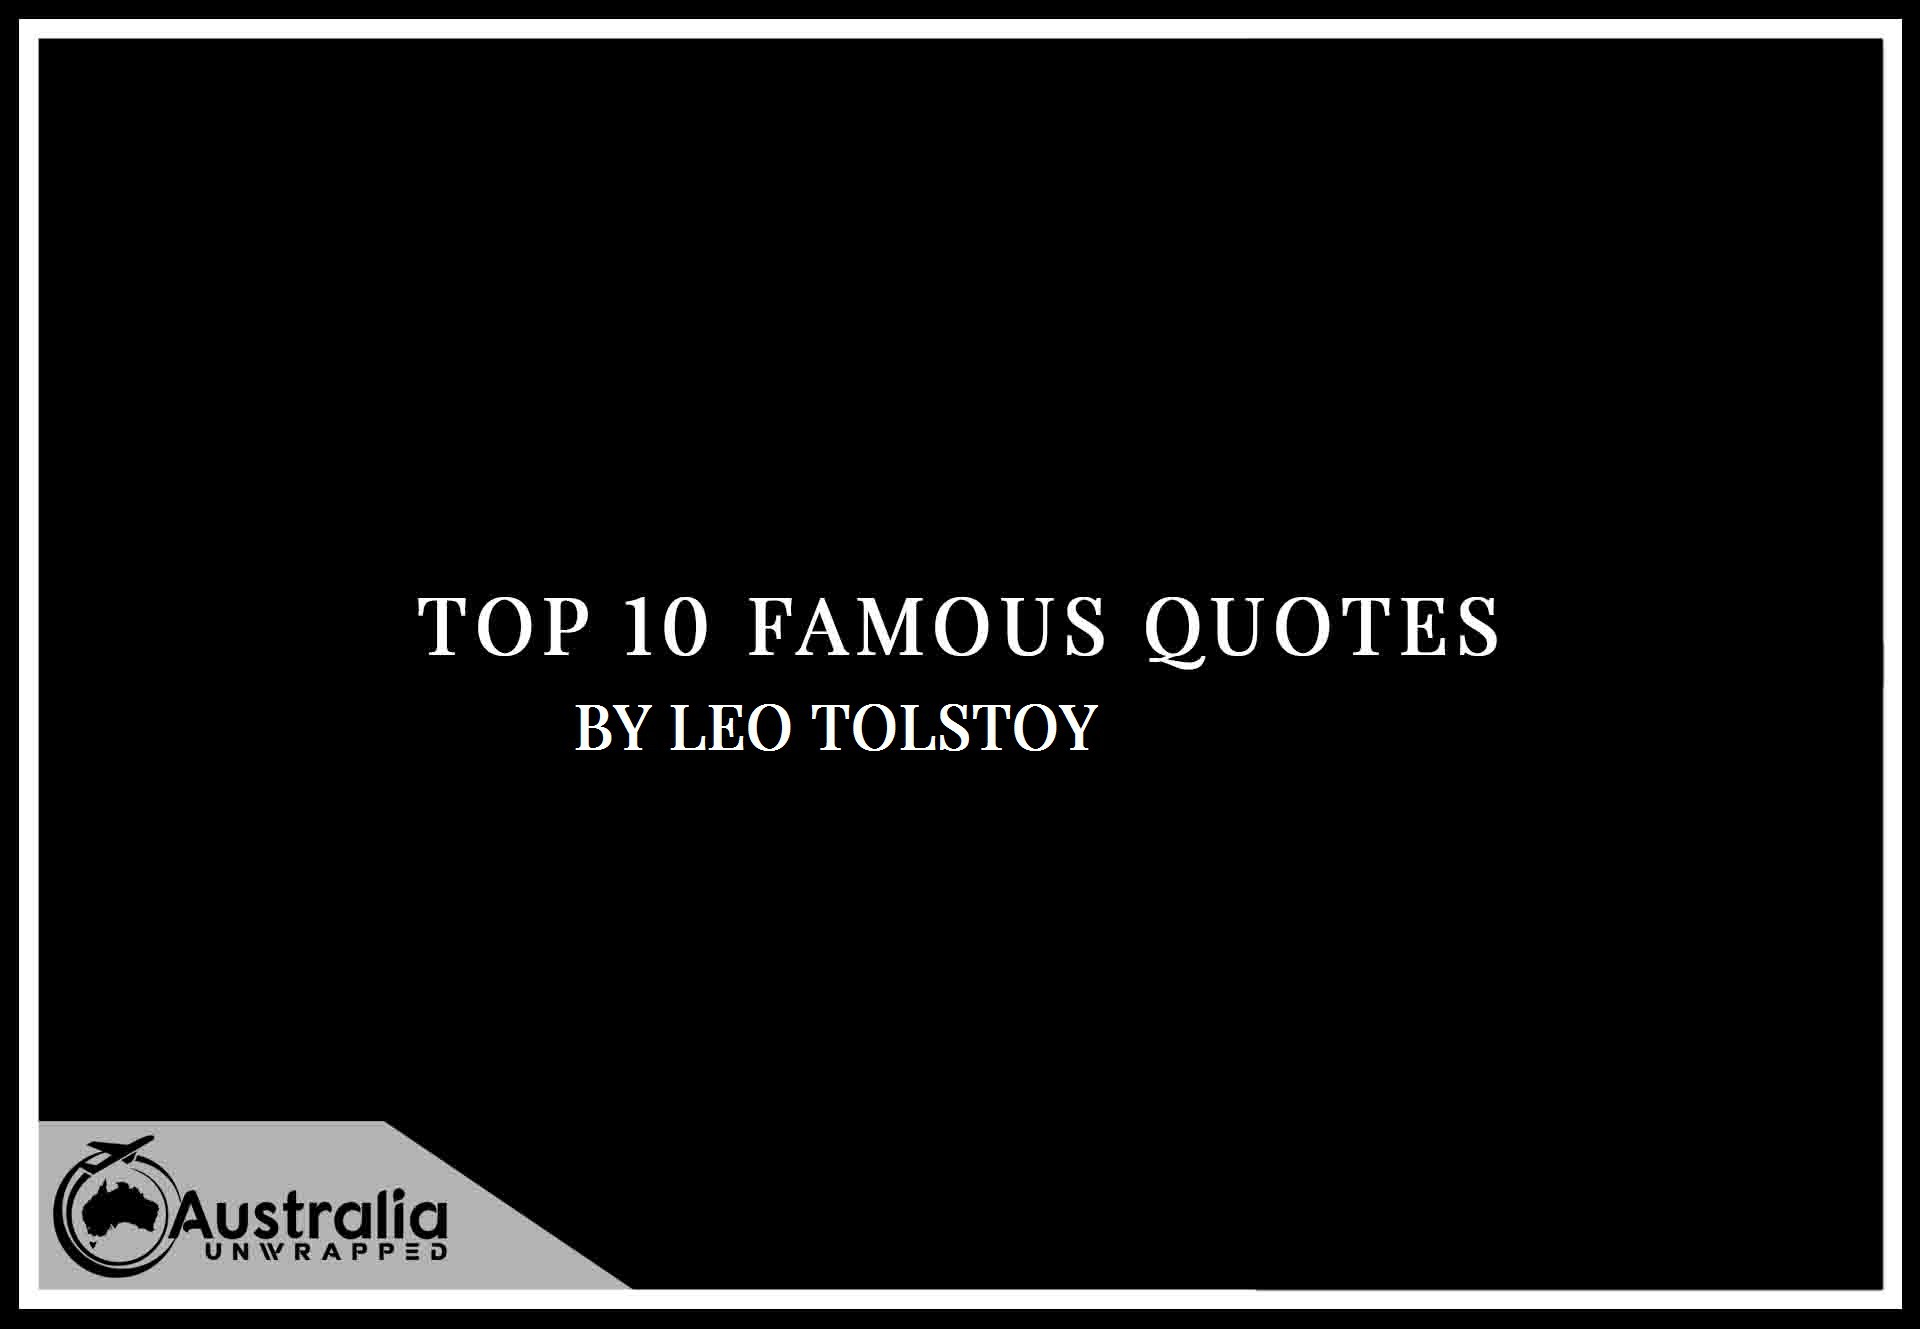 Leo Tolstoy's Top 10 Popular and Famous Quotes